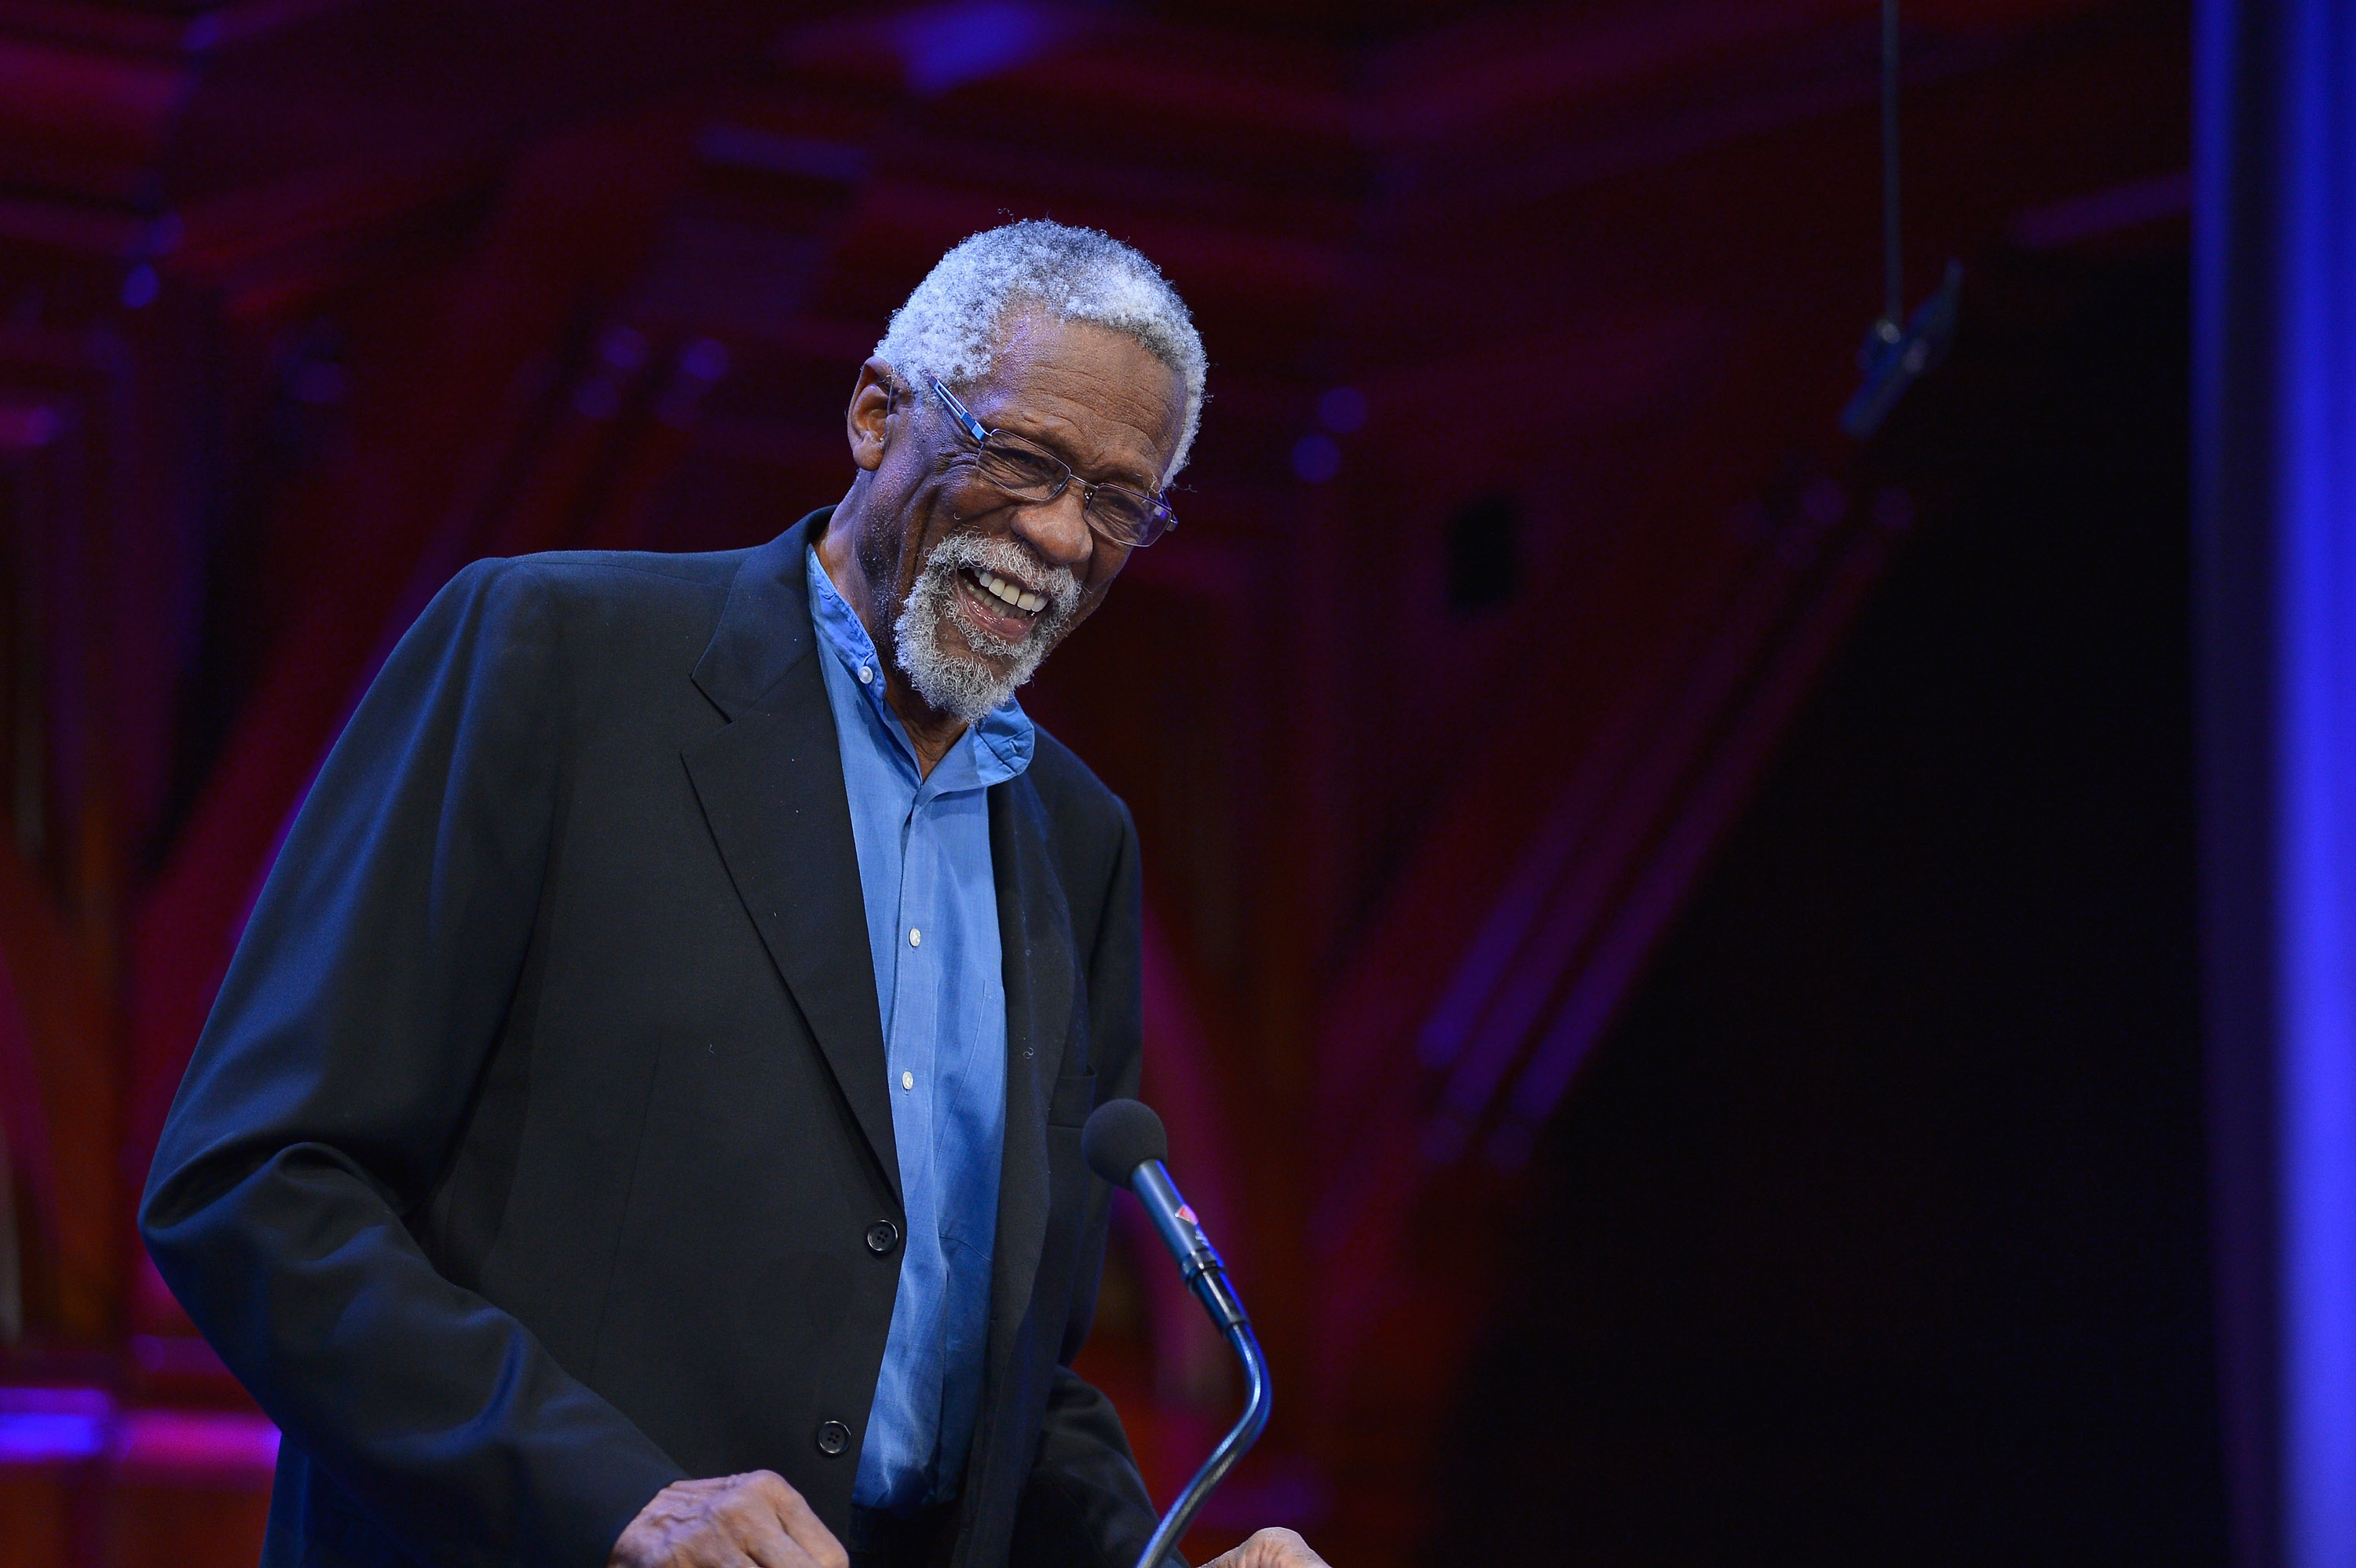 Bill Russell shares his true feelings about 2020.